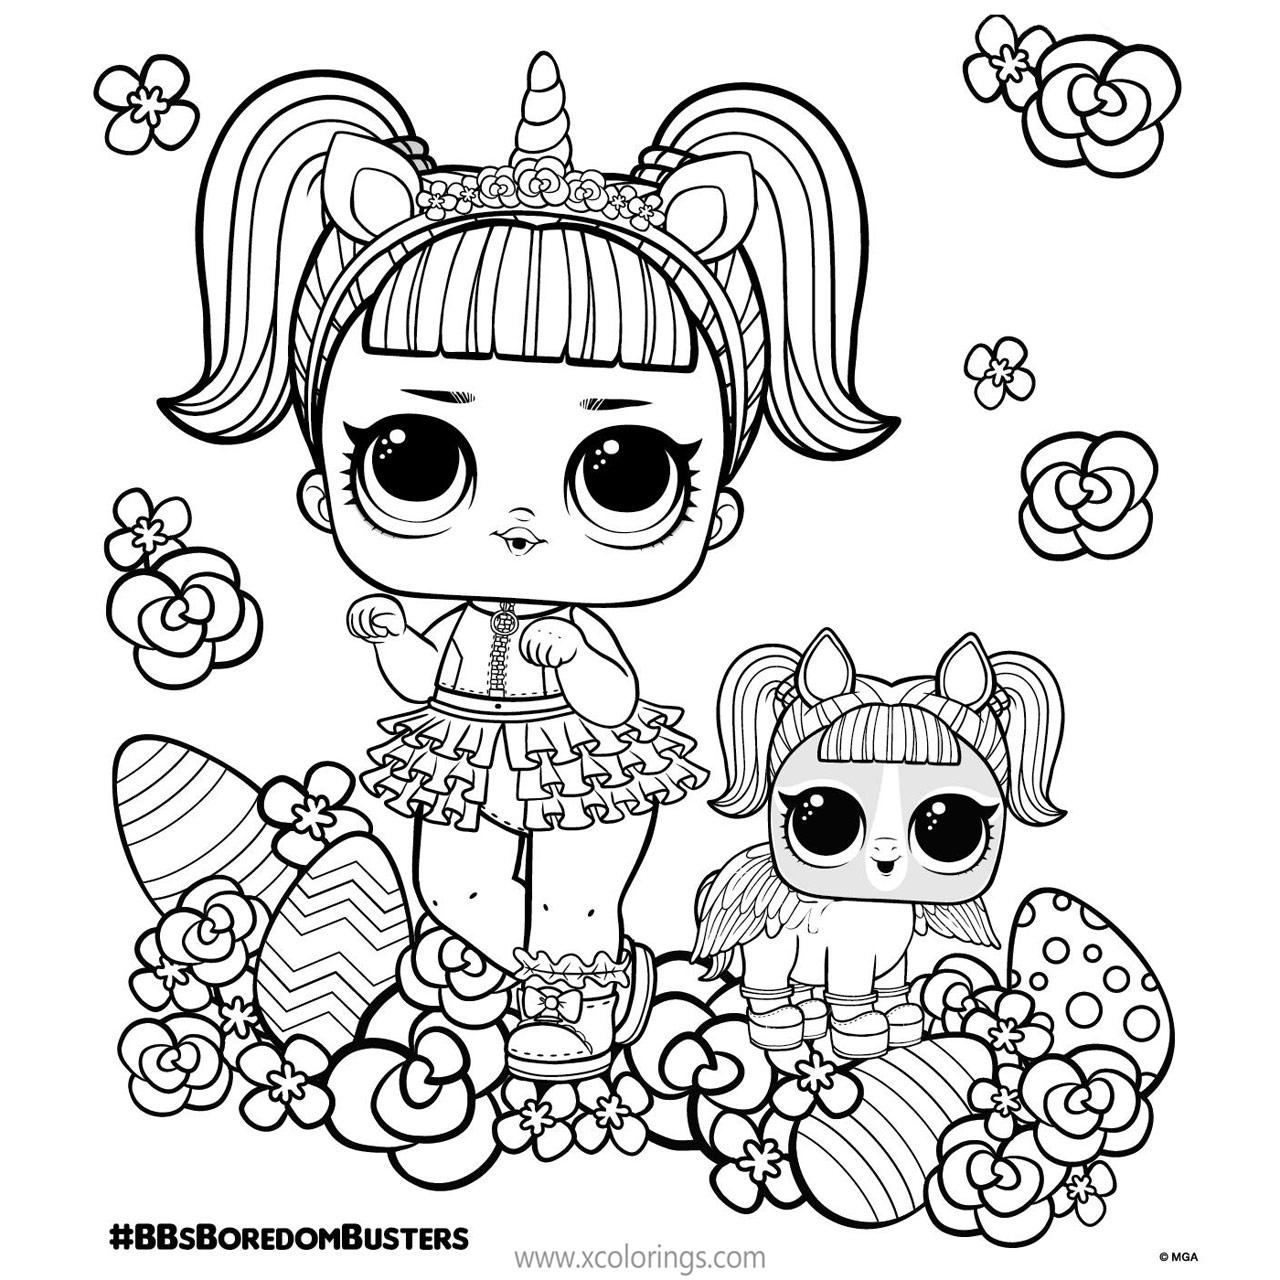 Free LOL Unicorn Coloring Pages Doll and Pet for Easter printable